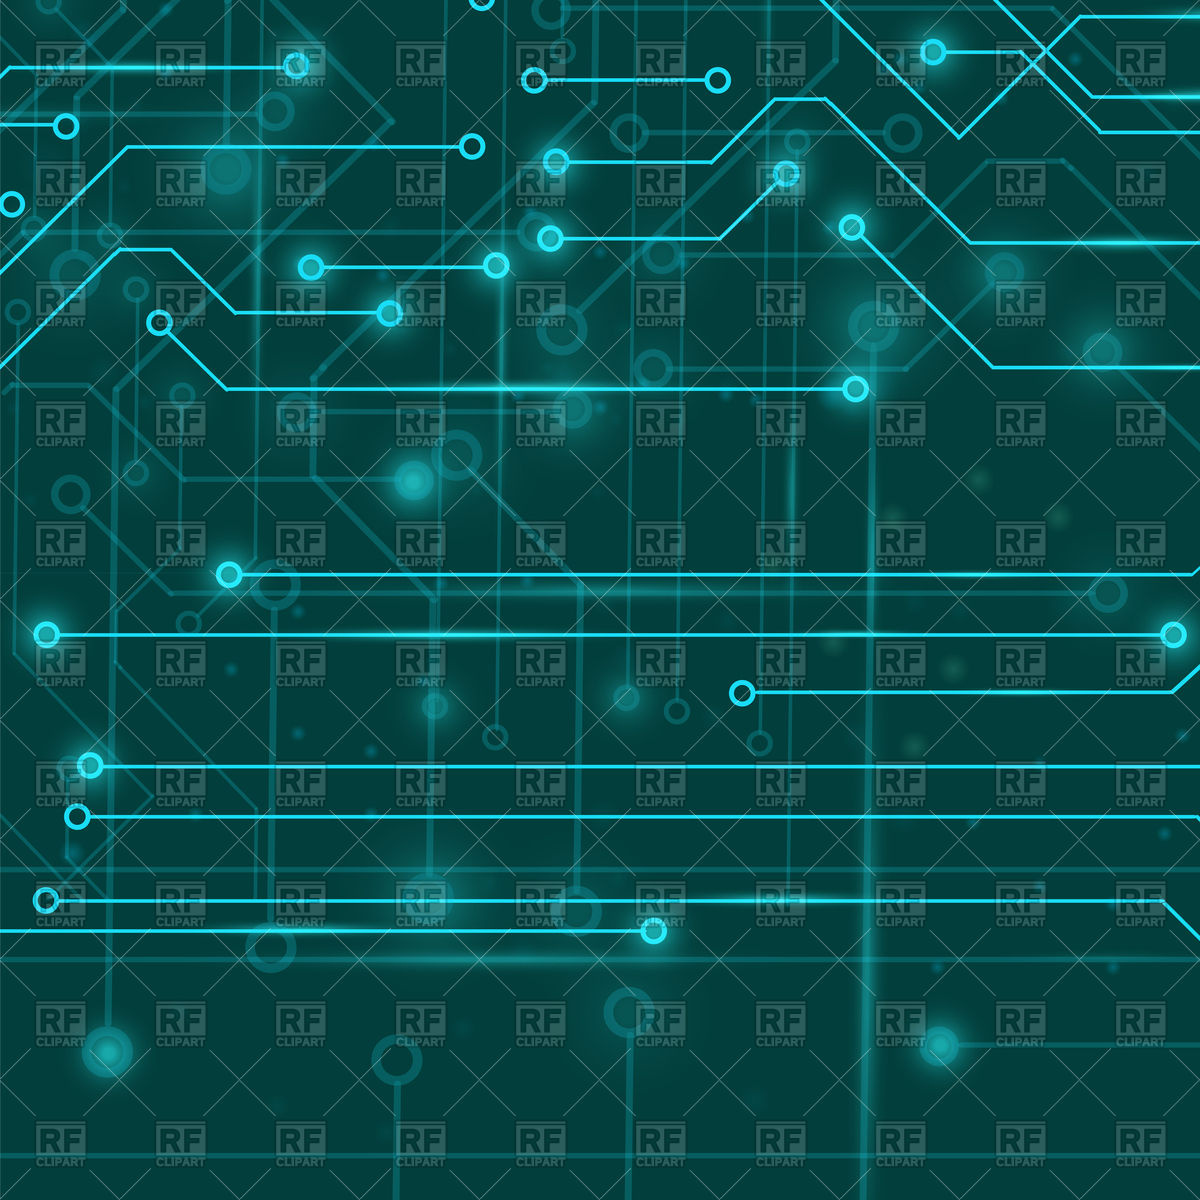 Circuit board pattern Vector Image #108807.